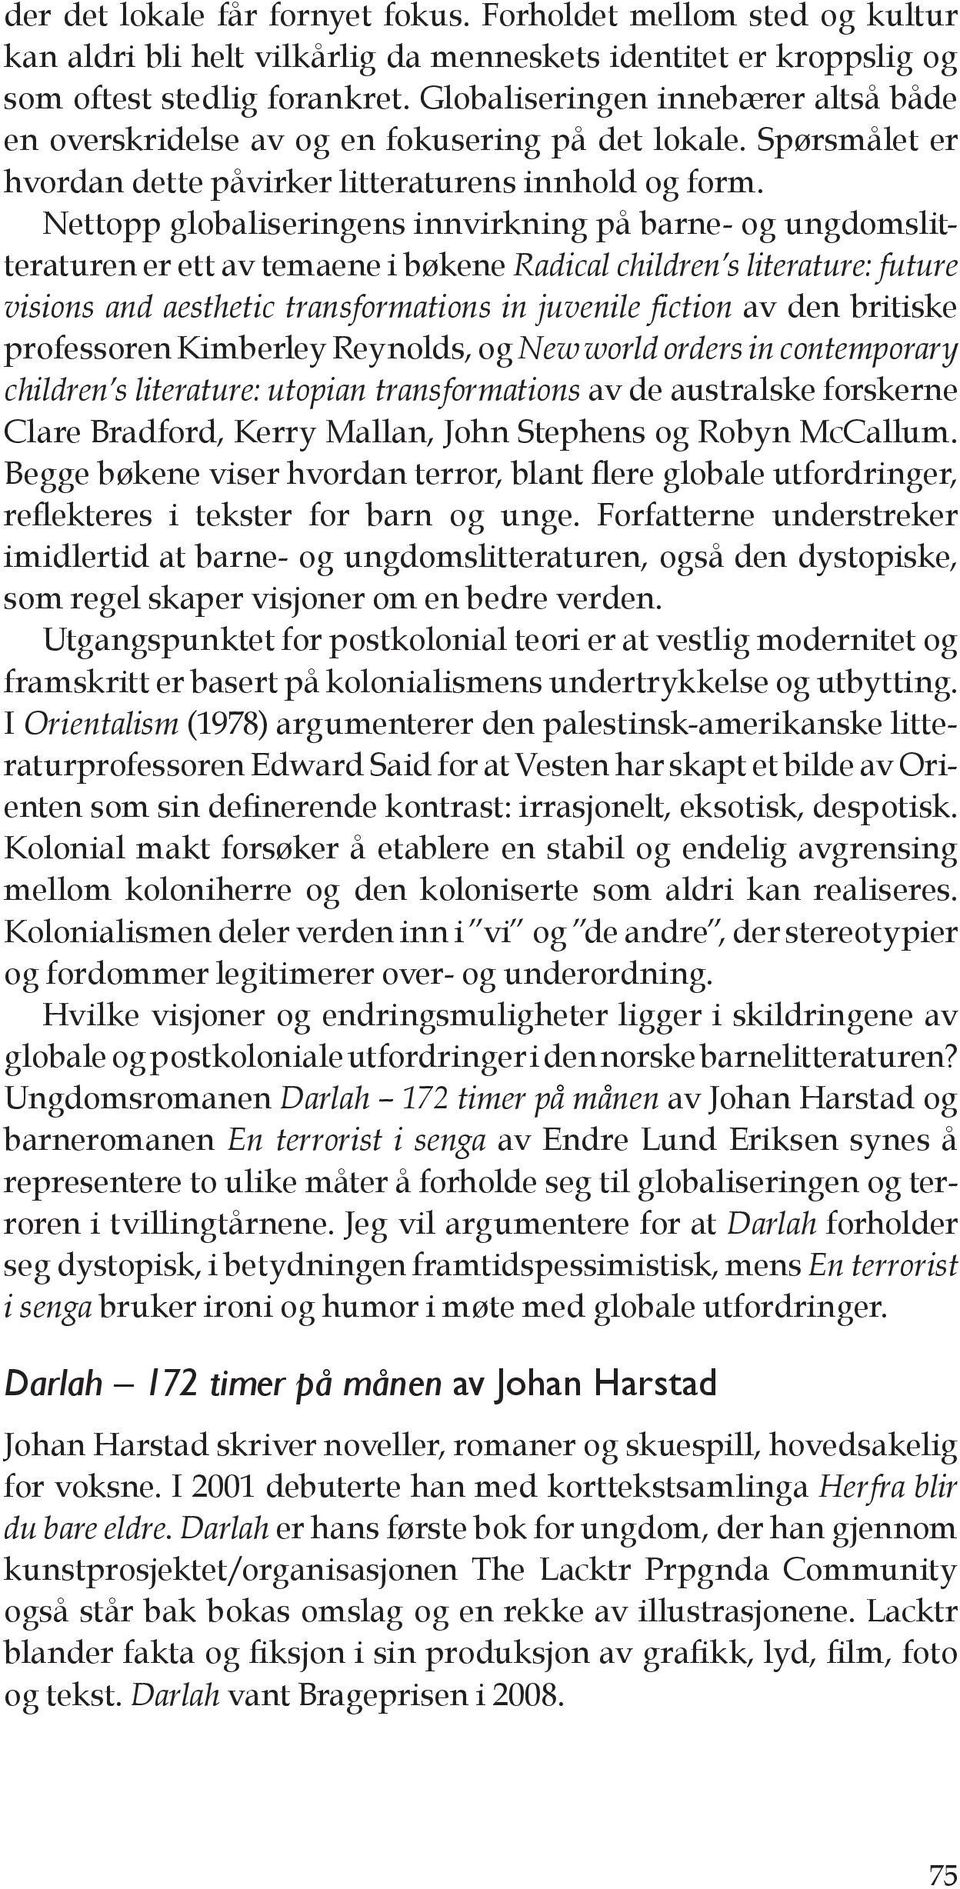 Nettopp globaliseringens innvirkning på barne- og ungdomslitteraturen er ett av temaene i bøkene Radical children s literature: future visions and aesthetic transformations in juvenile fiction av den